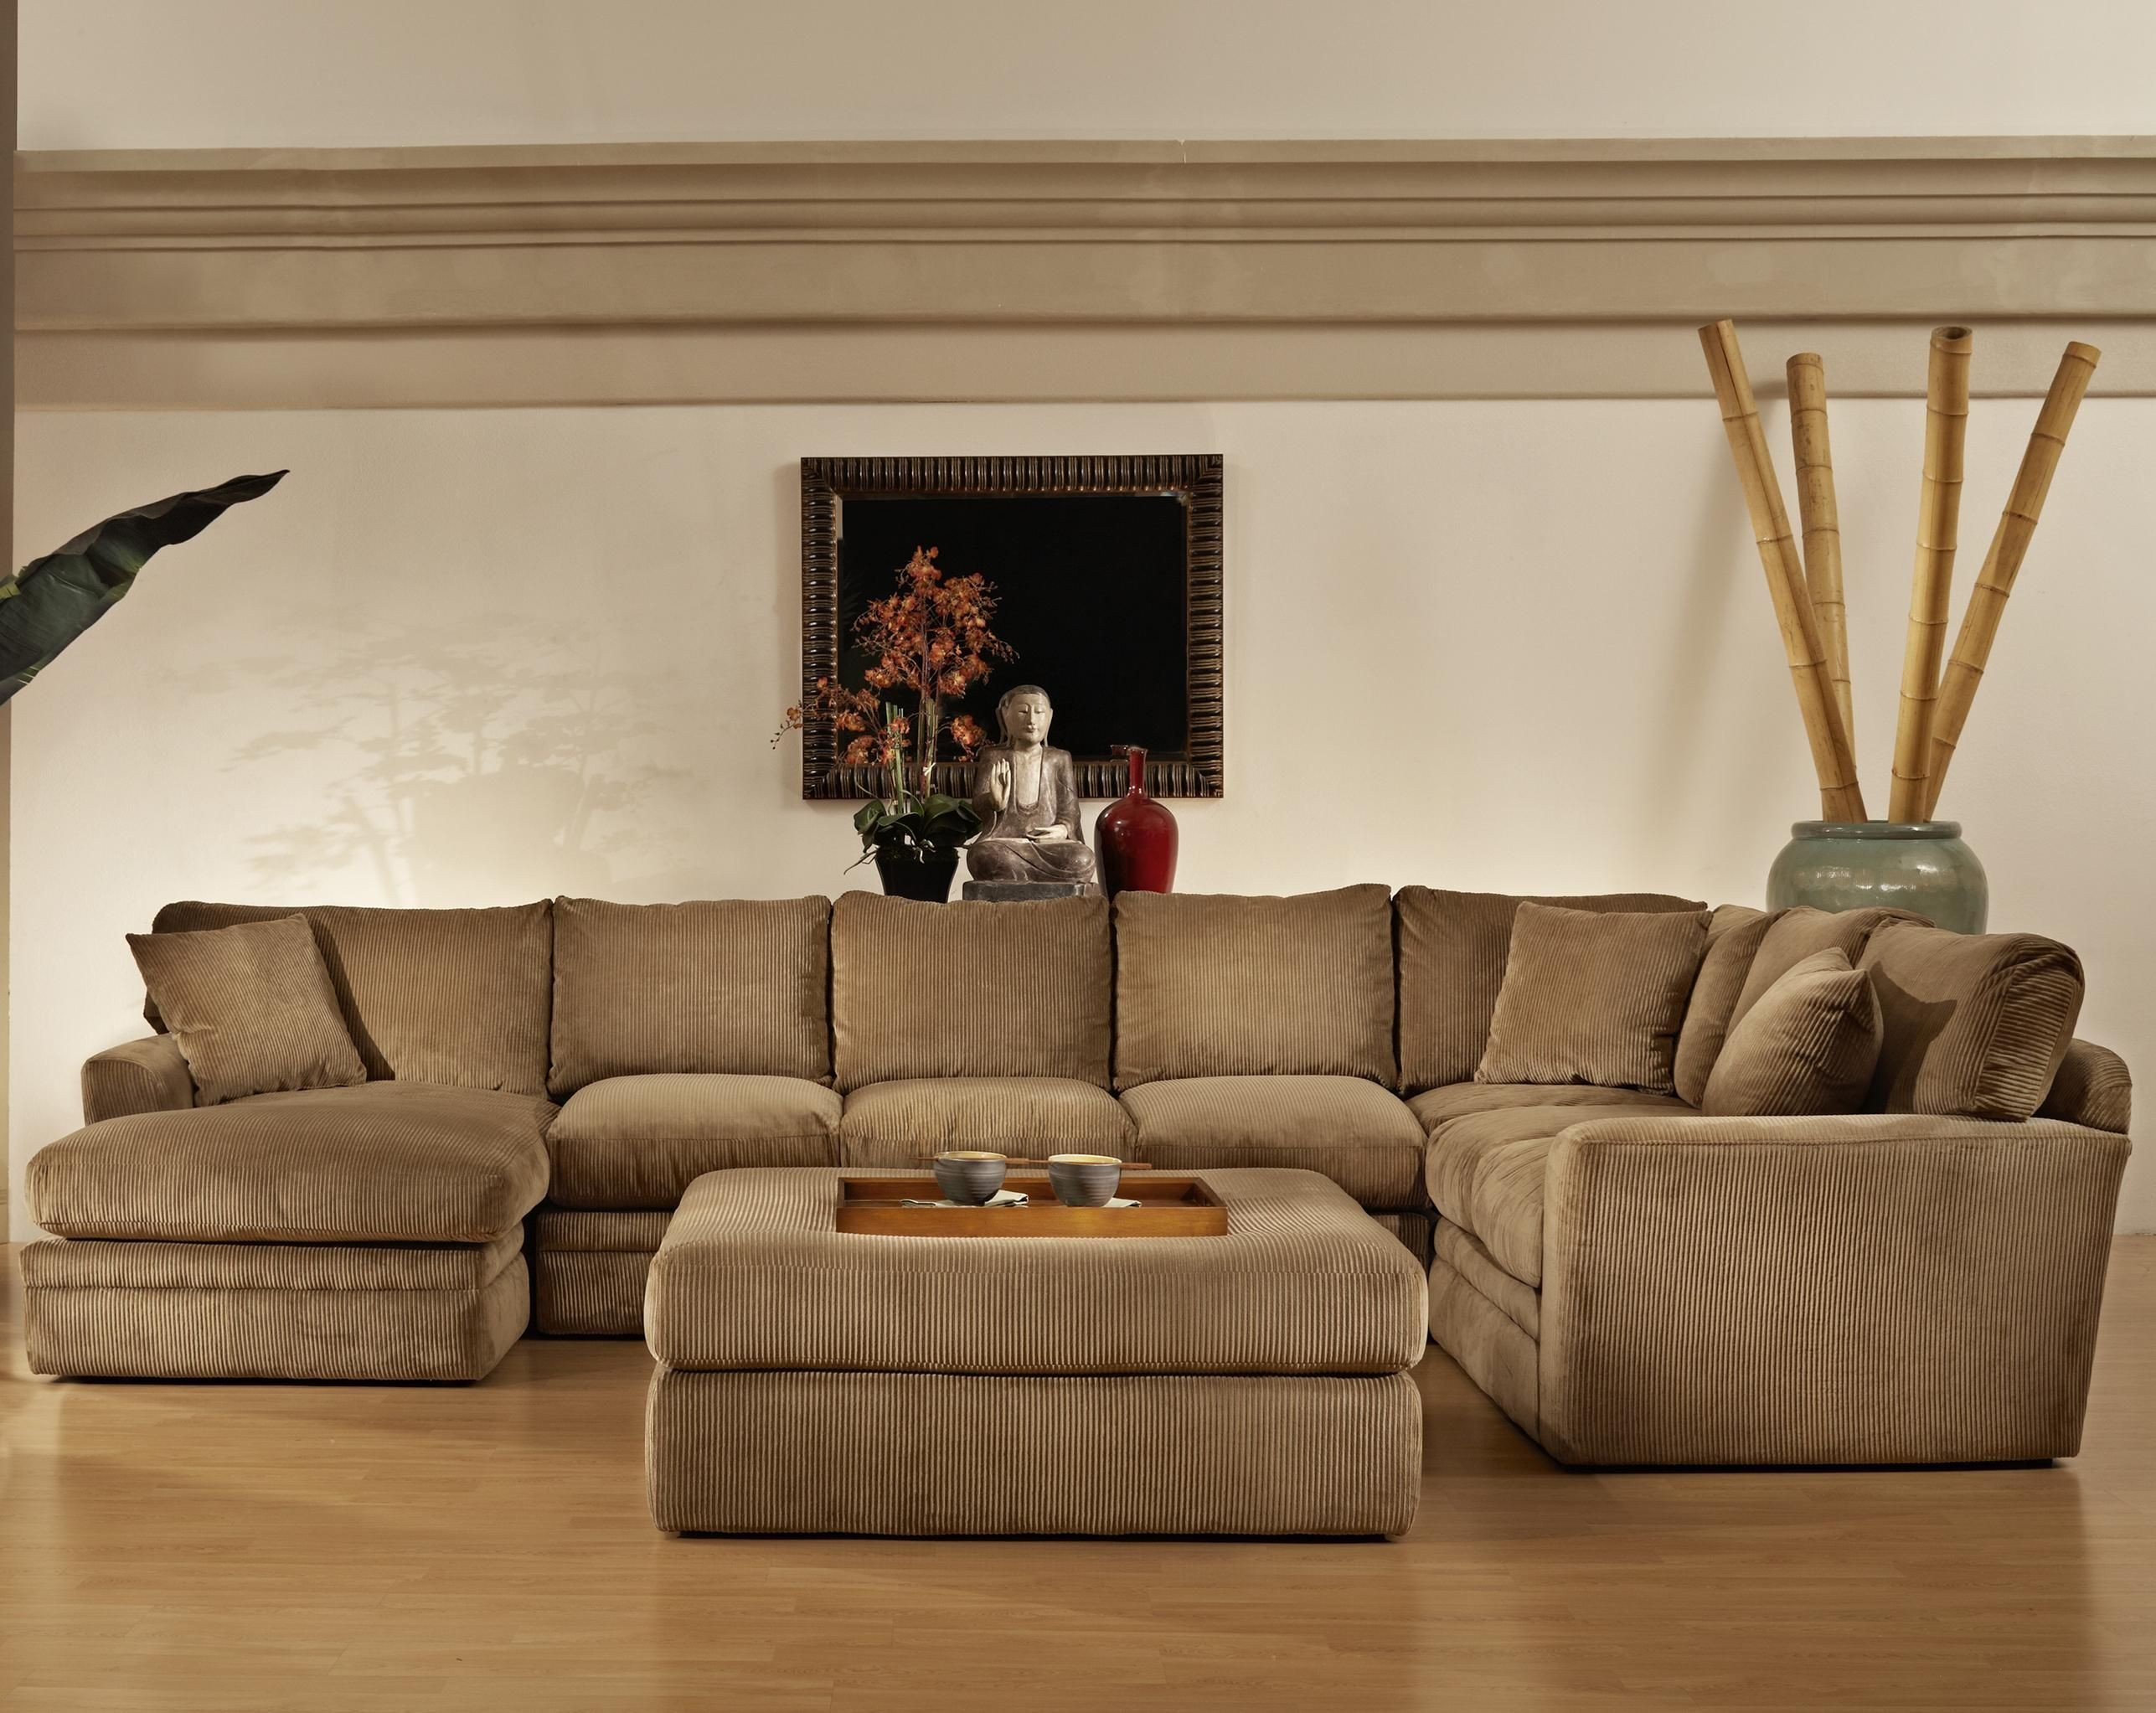 Most Comfortable Living Roomfurniture Statue Of the Most fortable Couch Furniture